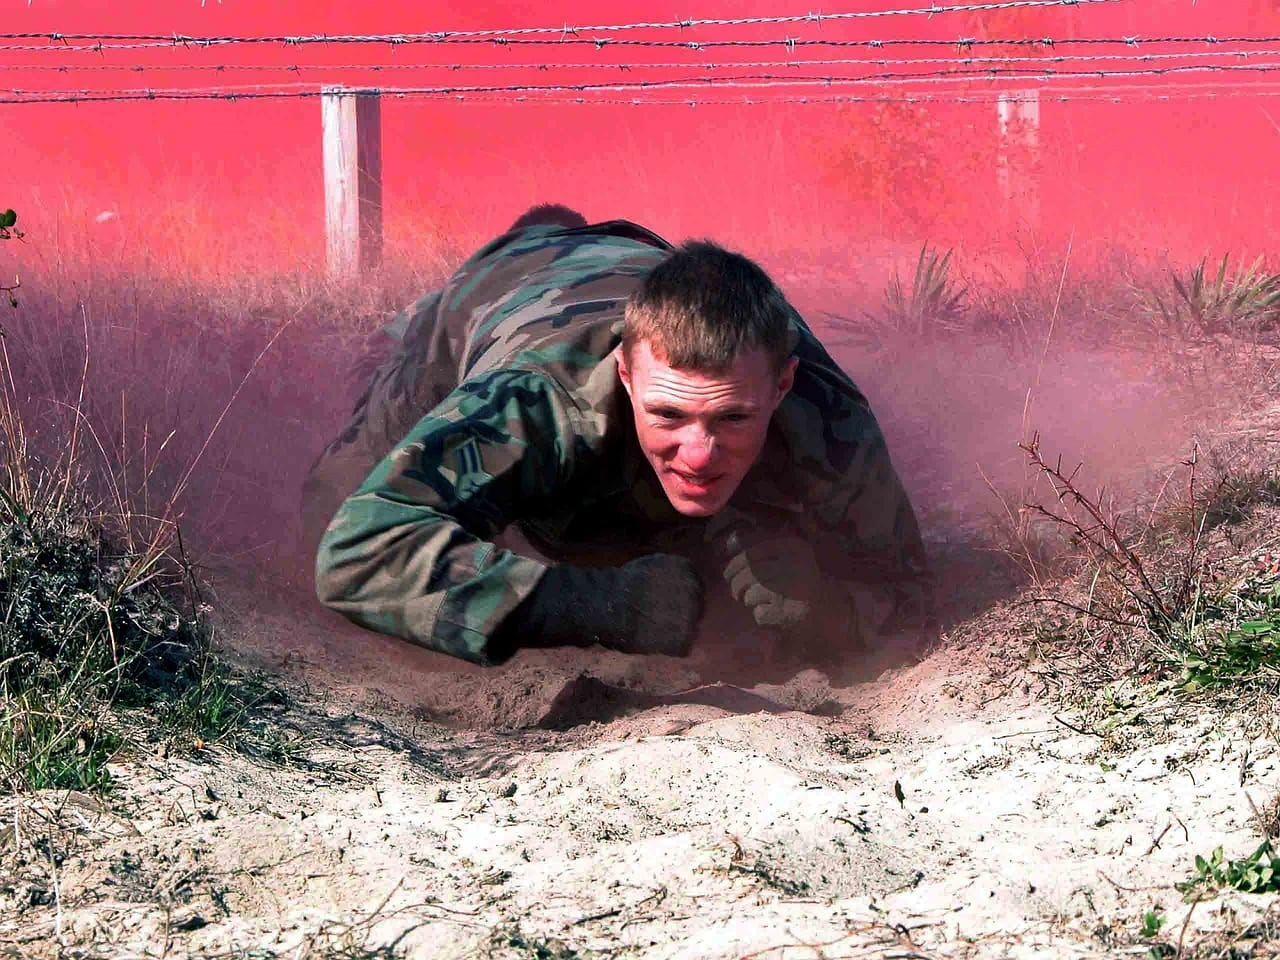 Man Crawling Through Obstacle Course